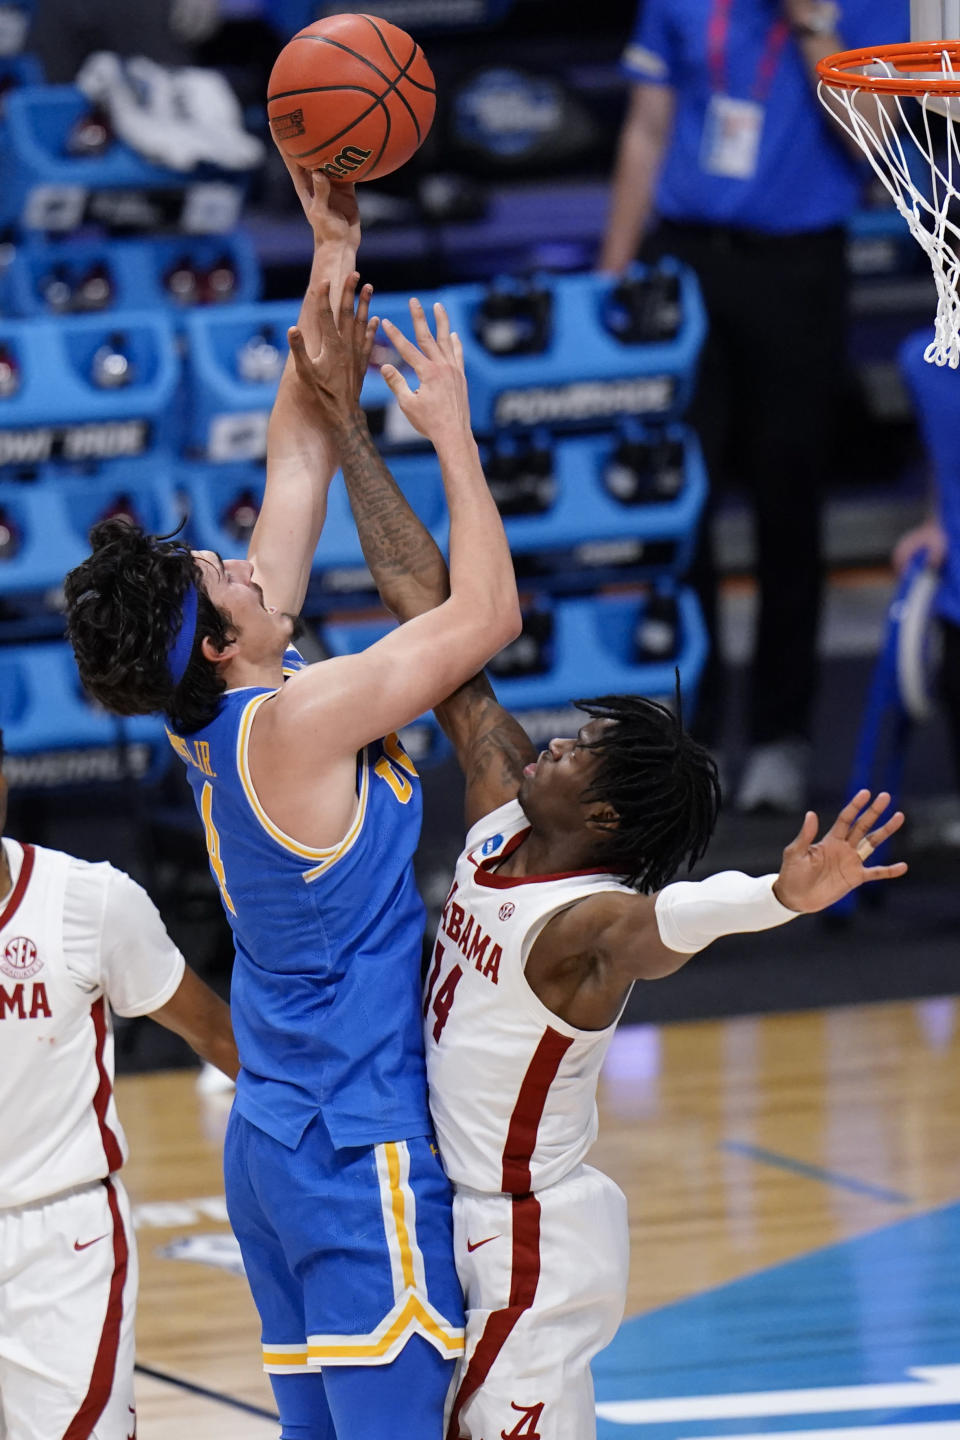 UCLA guard Jaime Jaquez Jr. (4) shoots on Alabama guard Keon Ellis (14) in the second half of a Sweet 16 game in the NCAA men's college basketball tournament at Hinkle Fieldhouse in Indianapolis, Sunday, March 28, 2021. (AP Photo/AJ Mast)